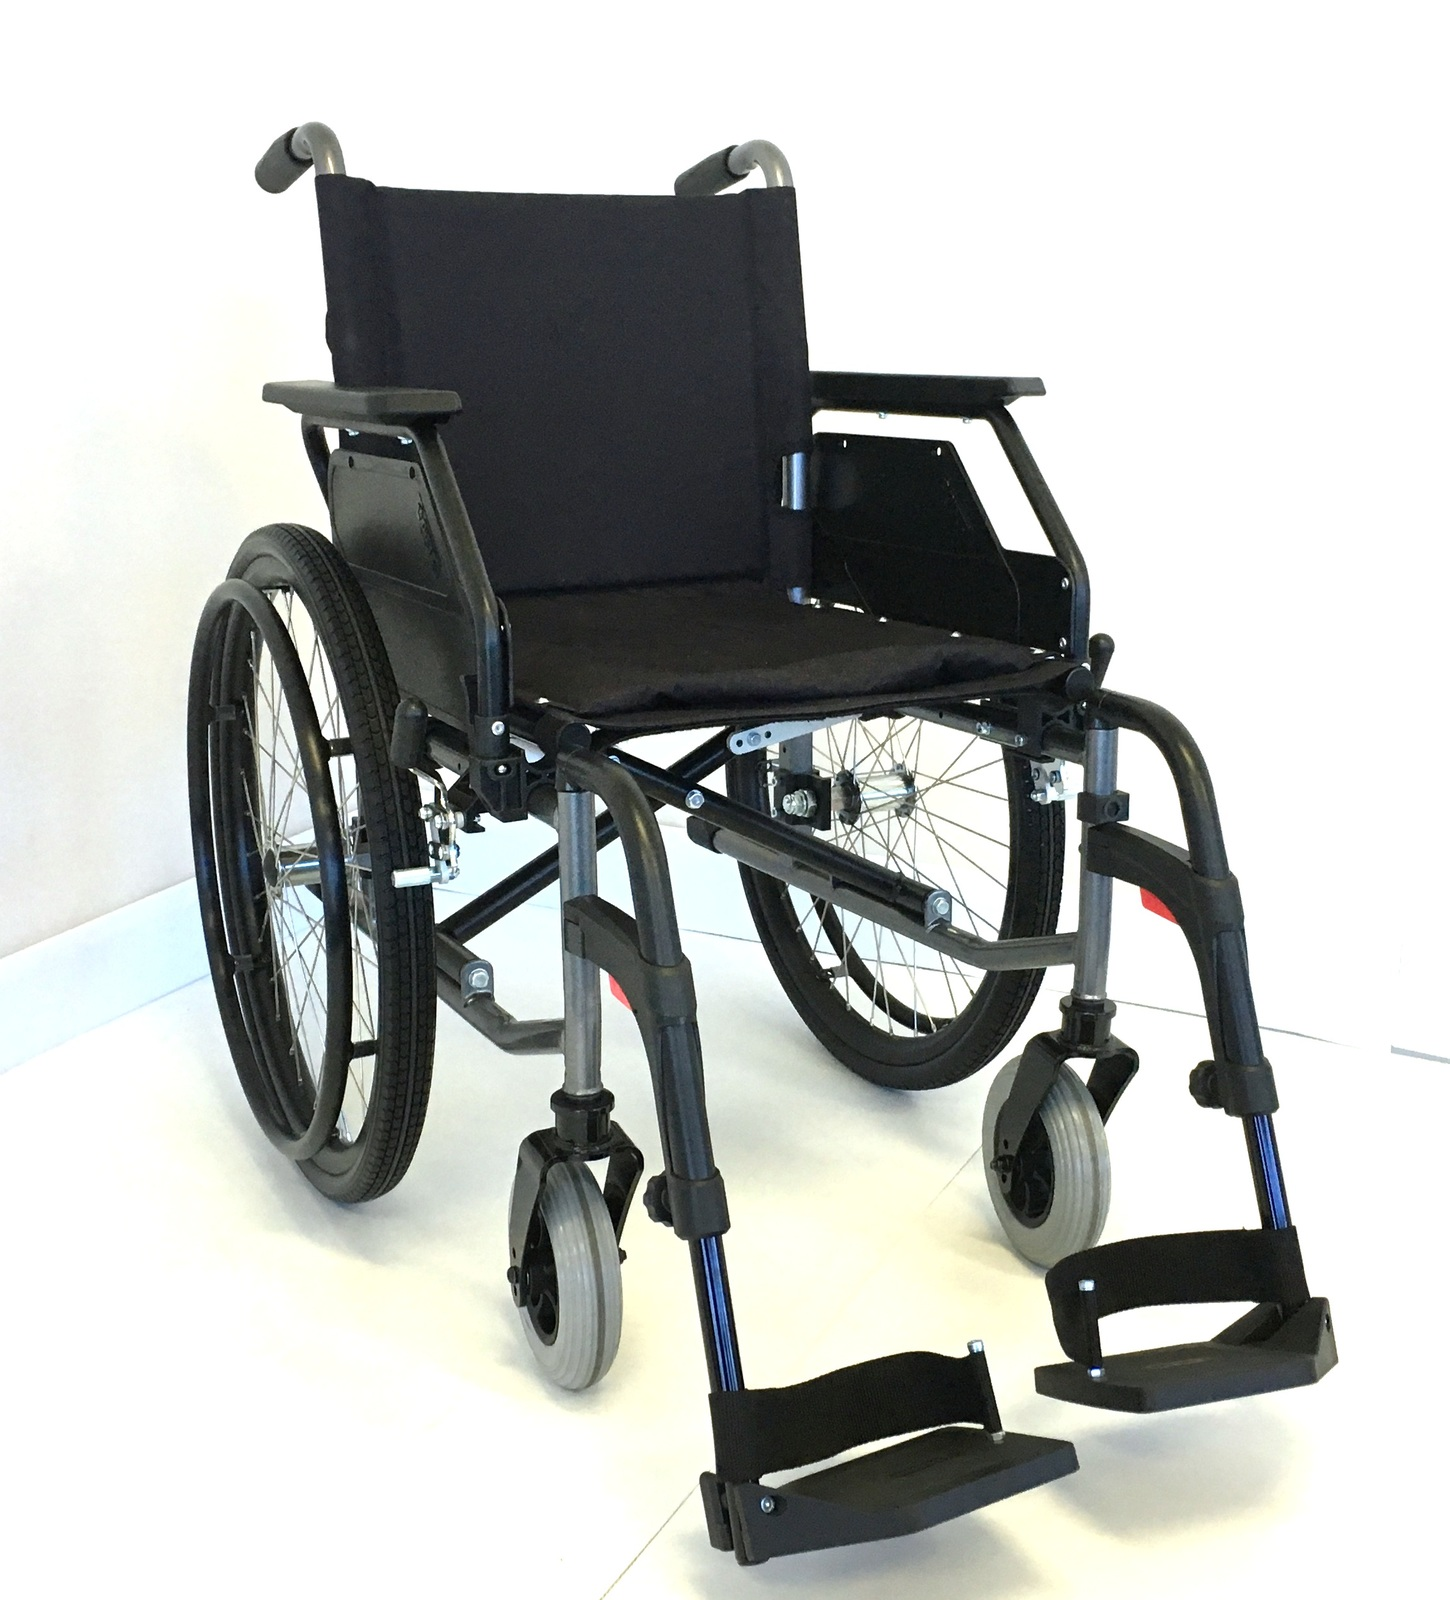 Trakka Wheelchair